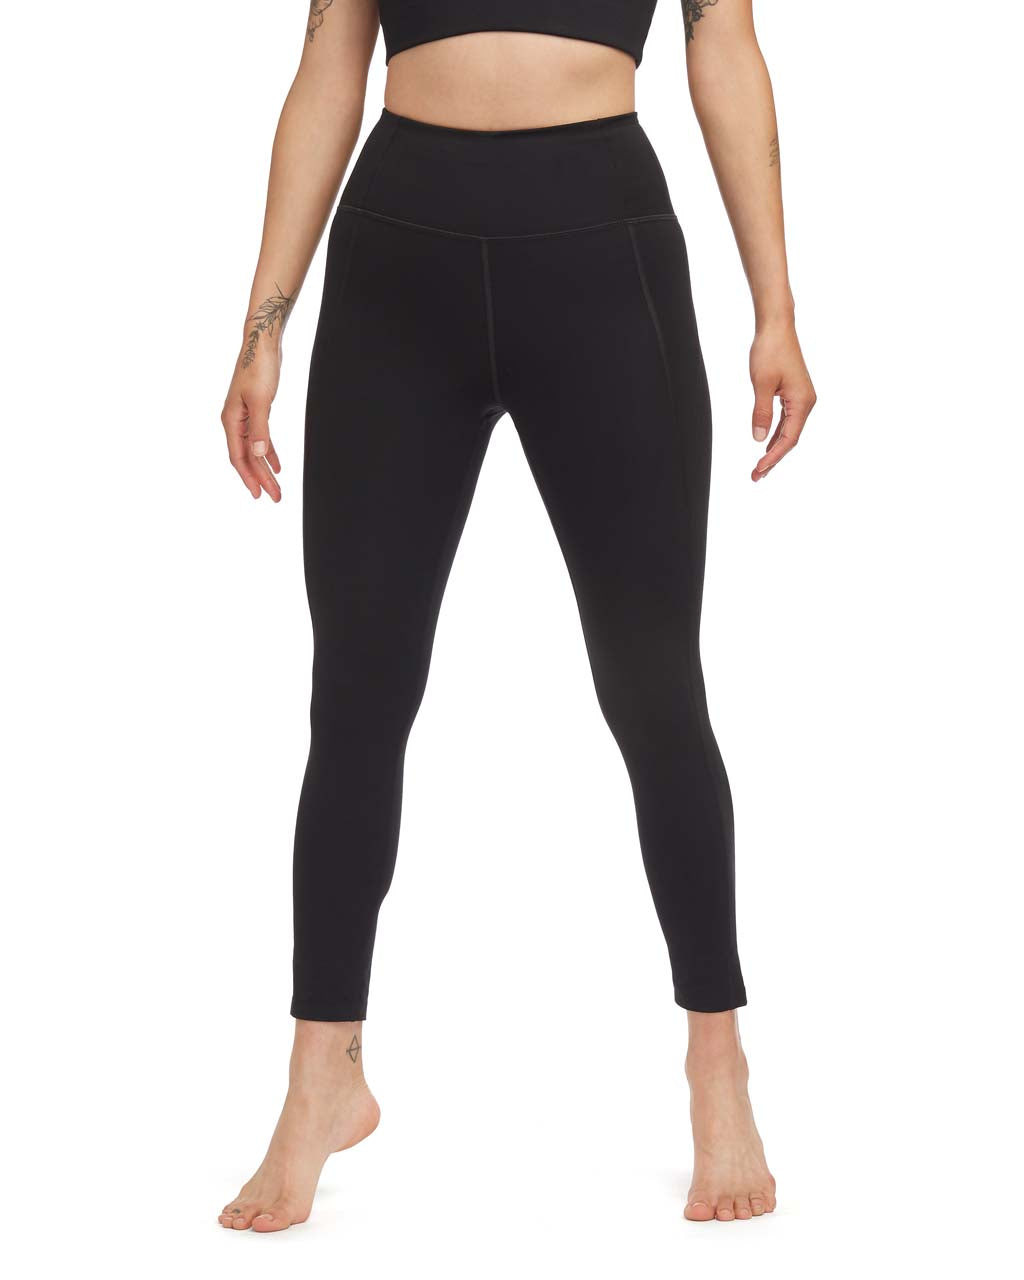 876cd215c56dde 7/8 Compression Legging - Black by Girlfriend Collective - active leggings  - ban.do